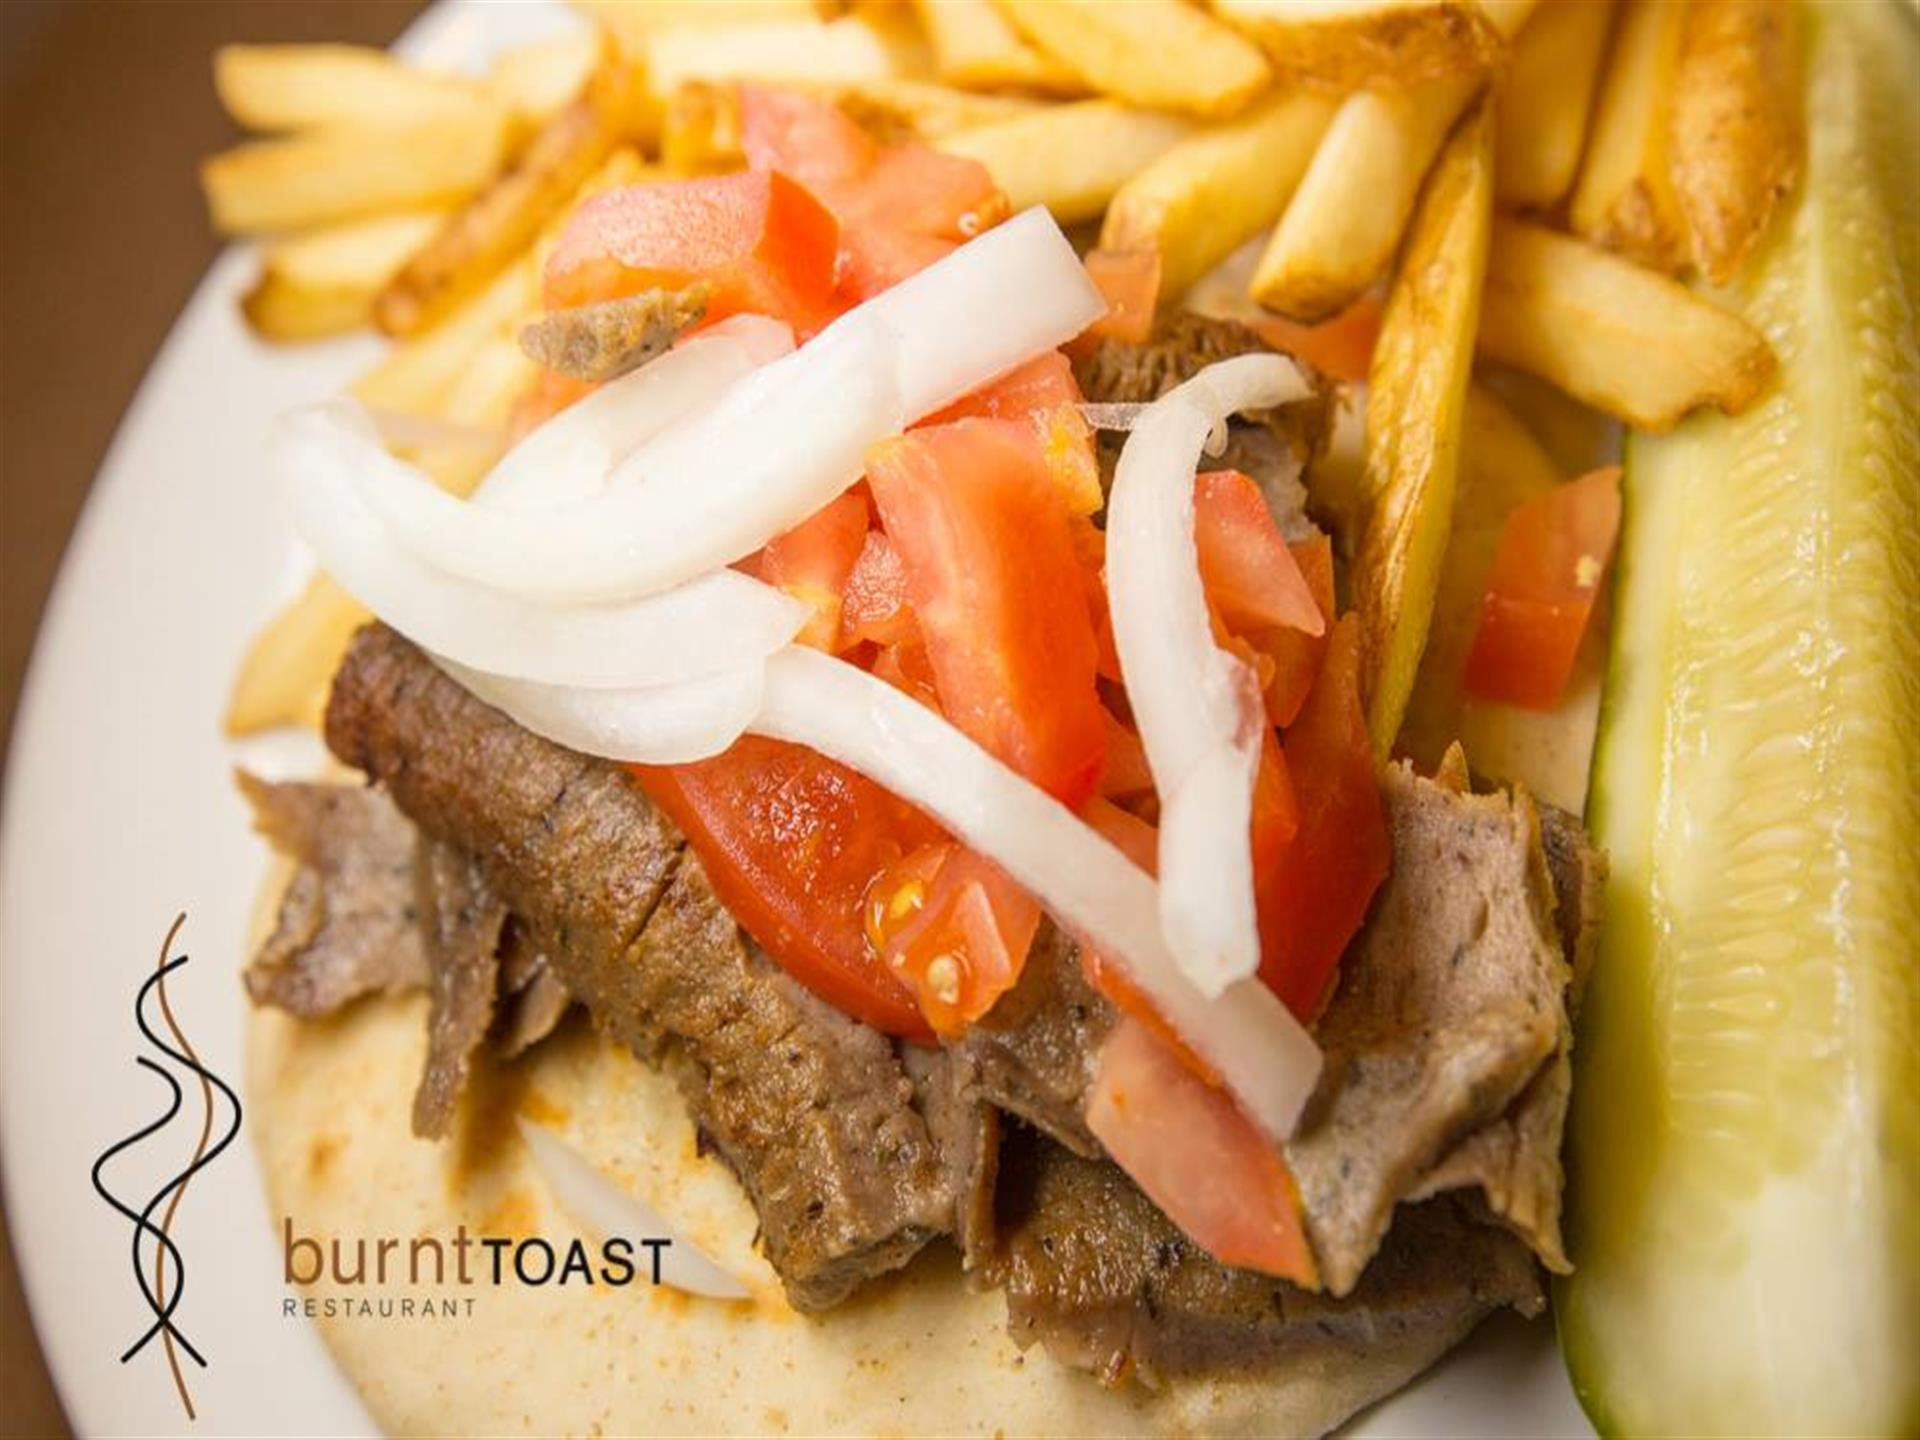 Close up of a beef gyro with tomato and onion. French fries on the side.